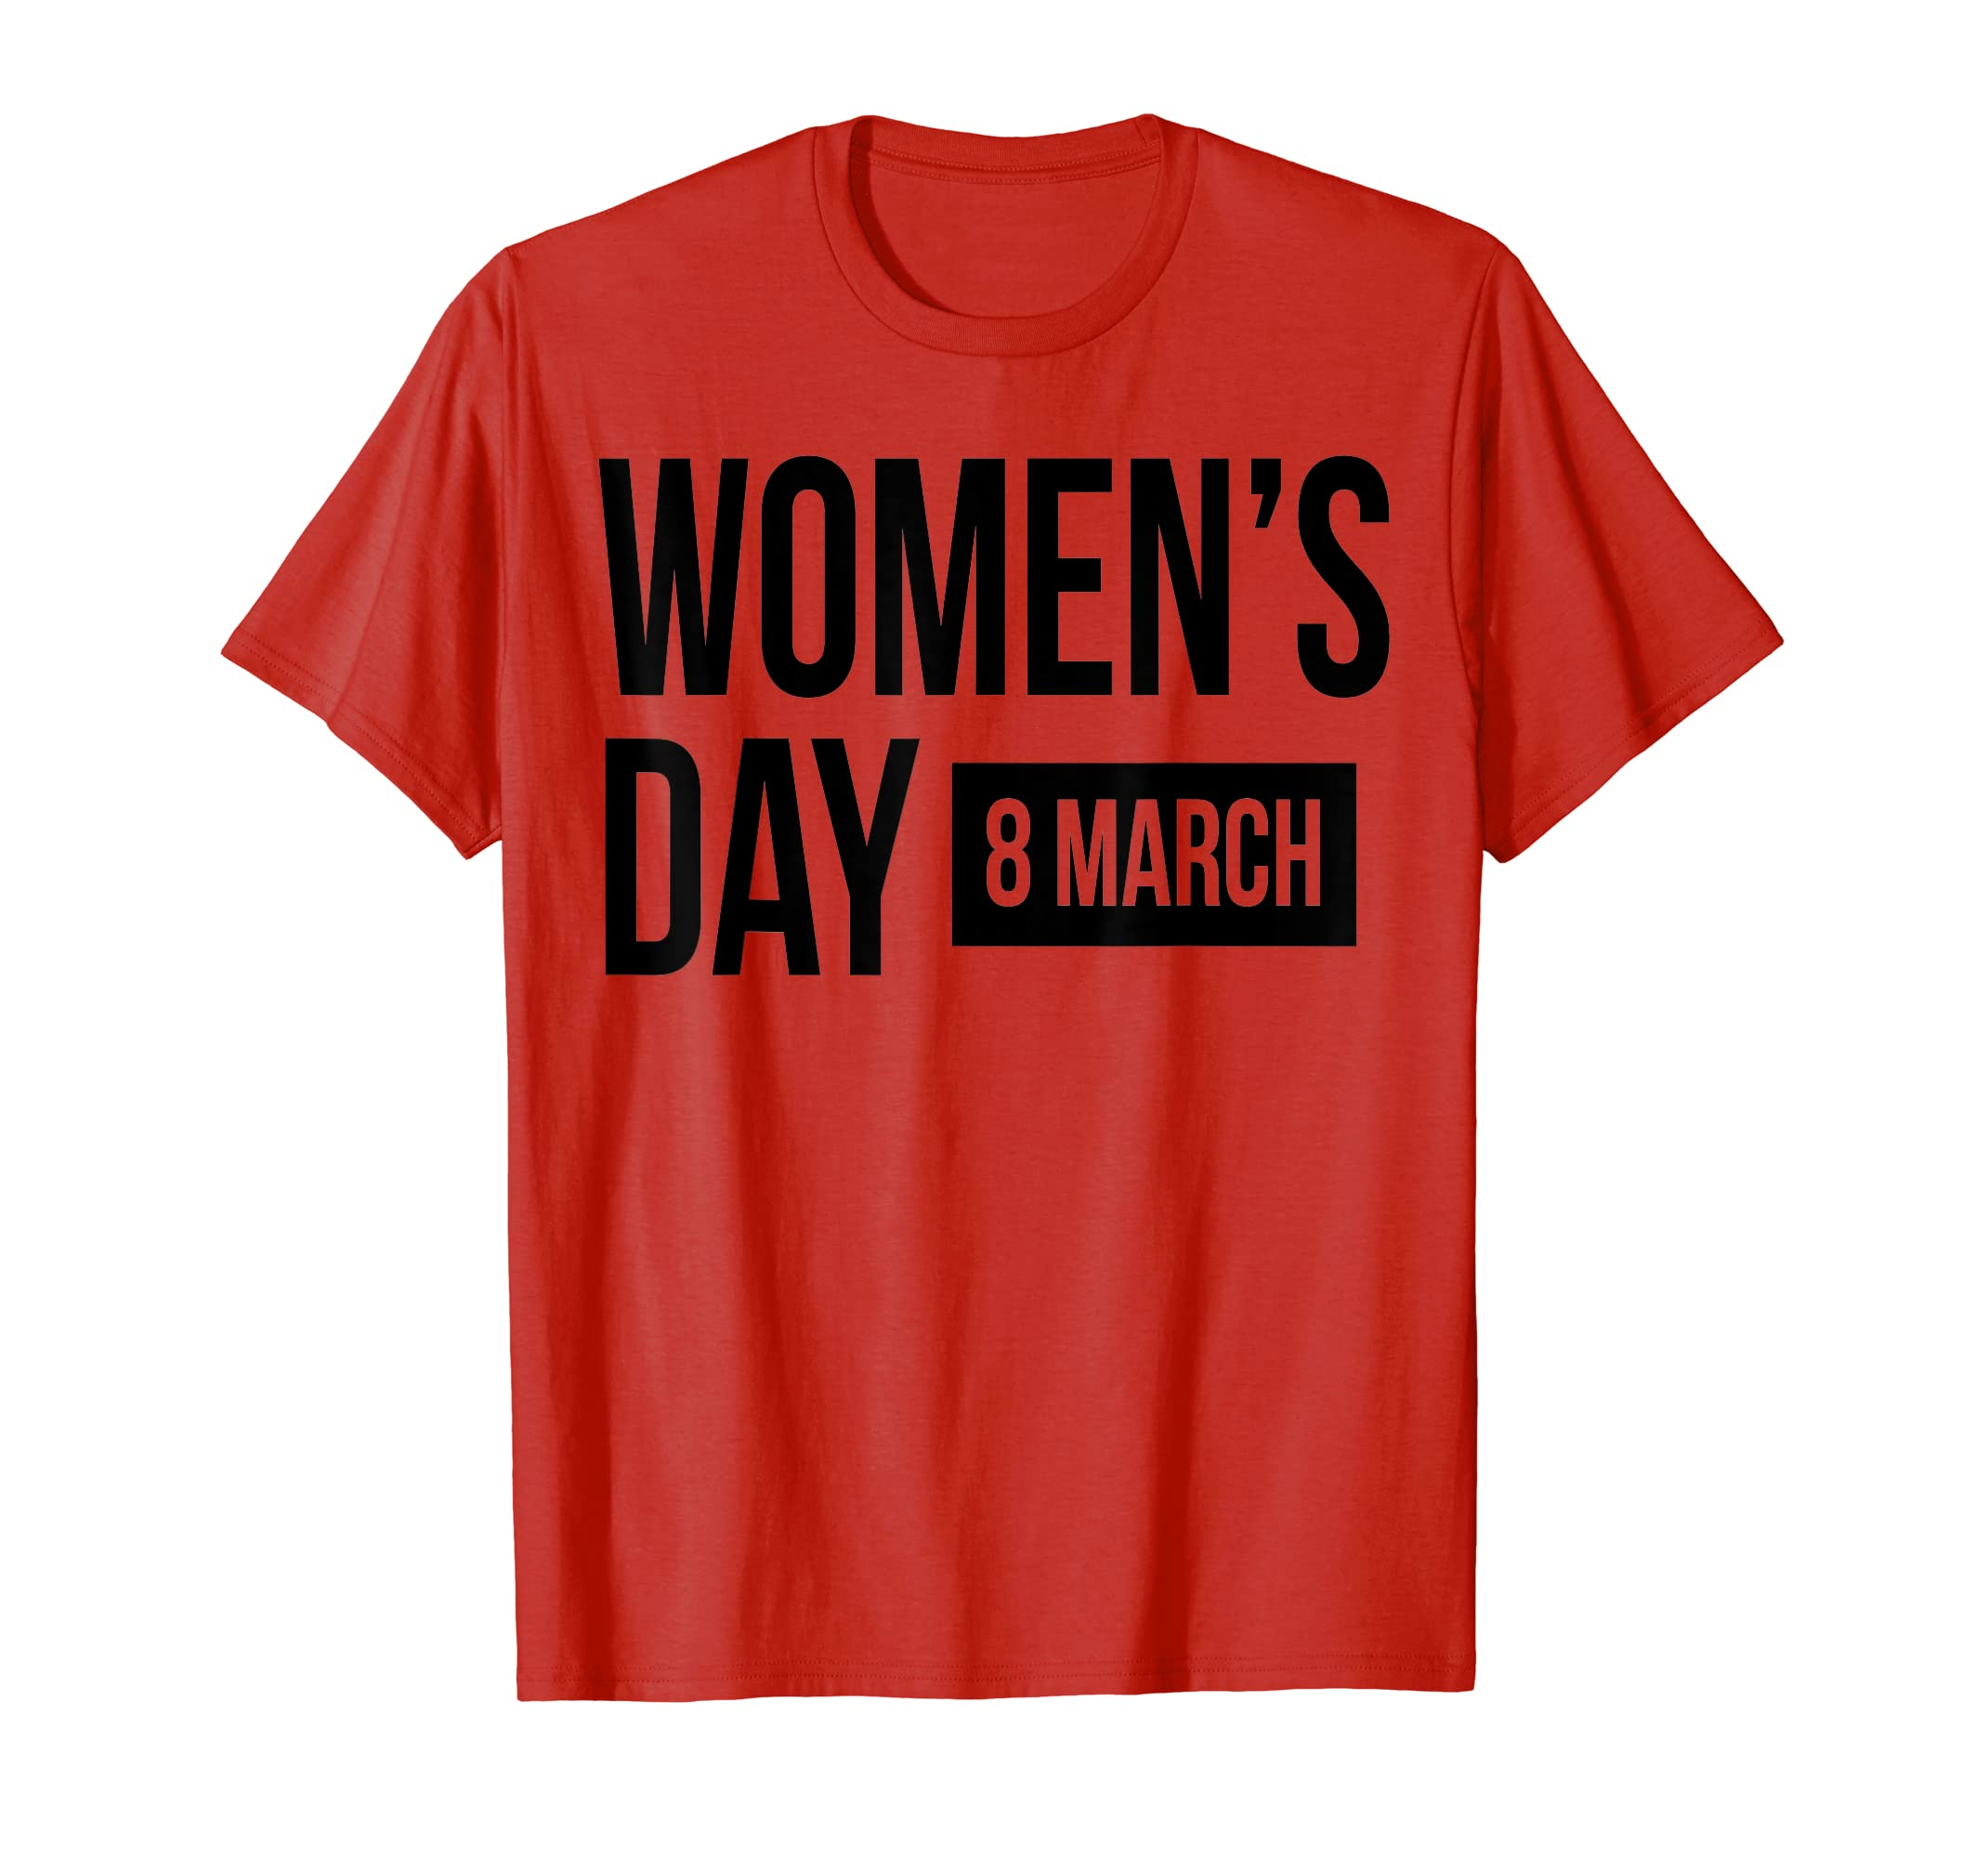 womens day 8 march party emancipation-SFL